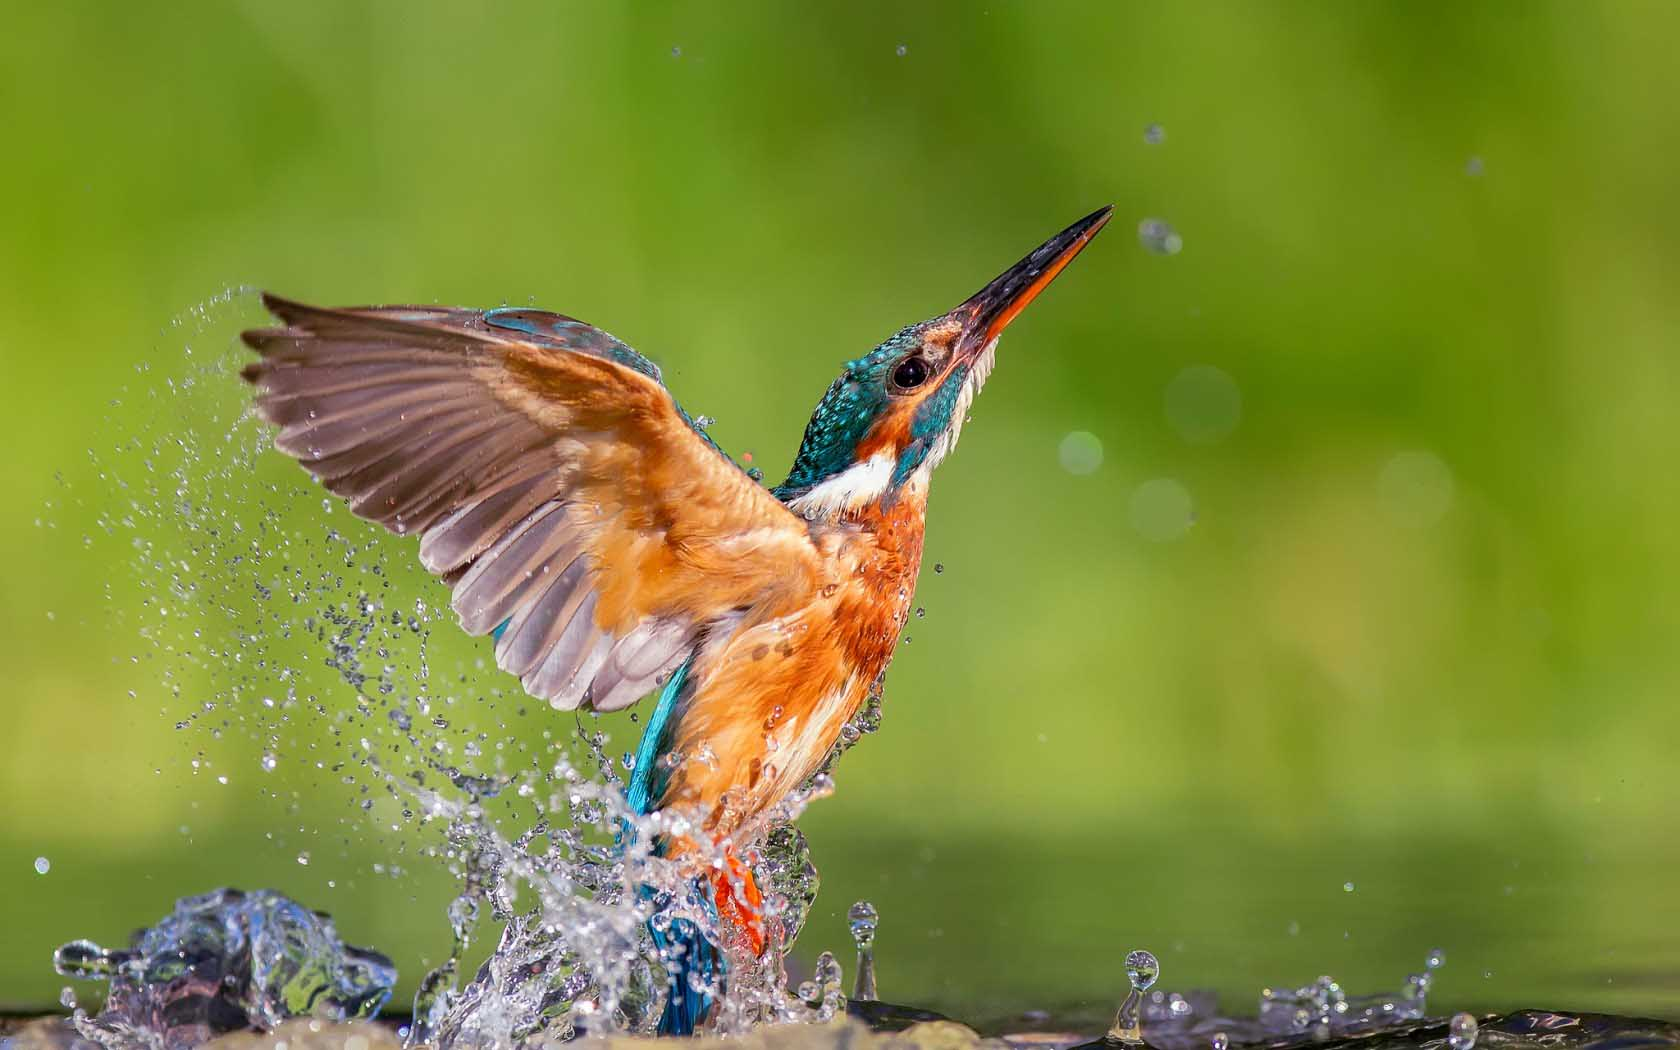 Kingfisher wallpapers wallpaper cave - Hd birds images download ...